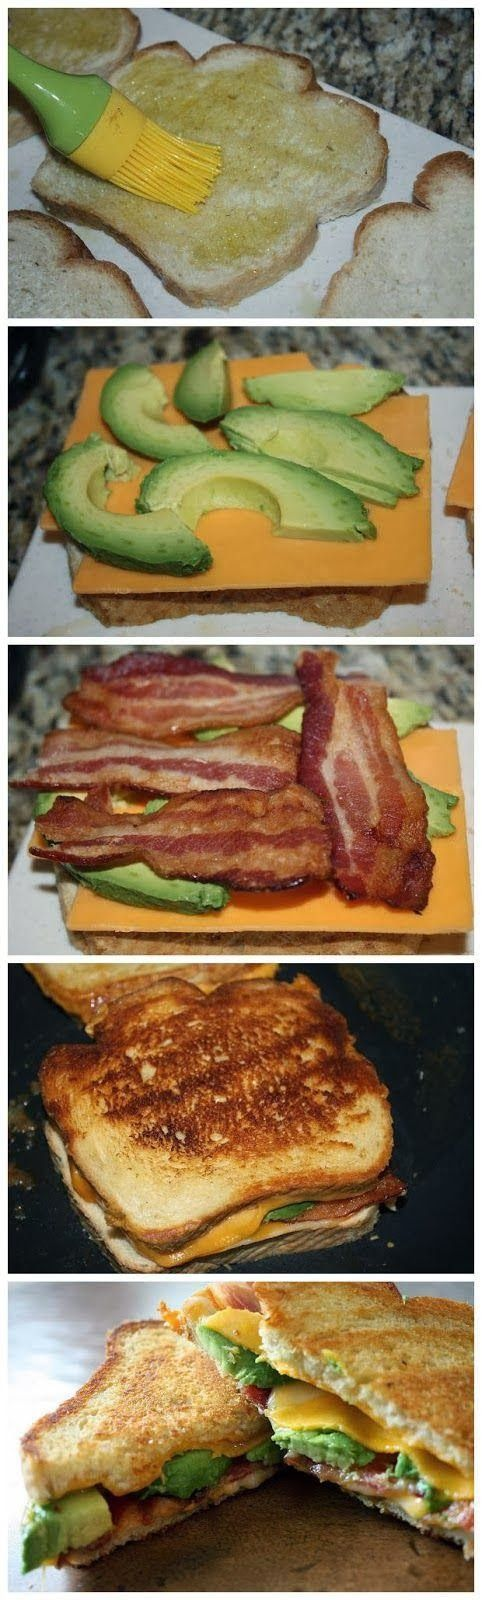 Yummy Recipes: Bacon Avocado Grilled Cheese recipe -- except I'd use turkey bacon.